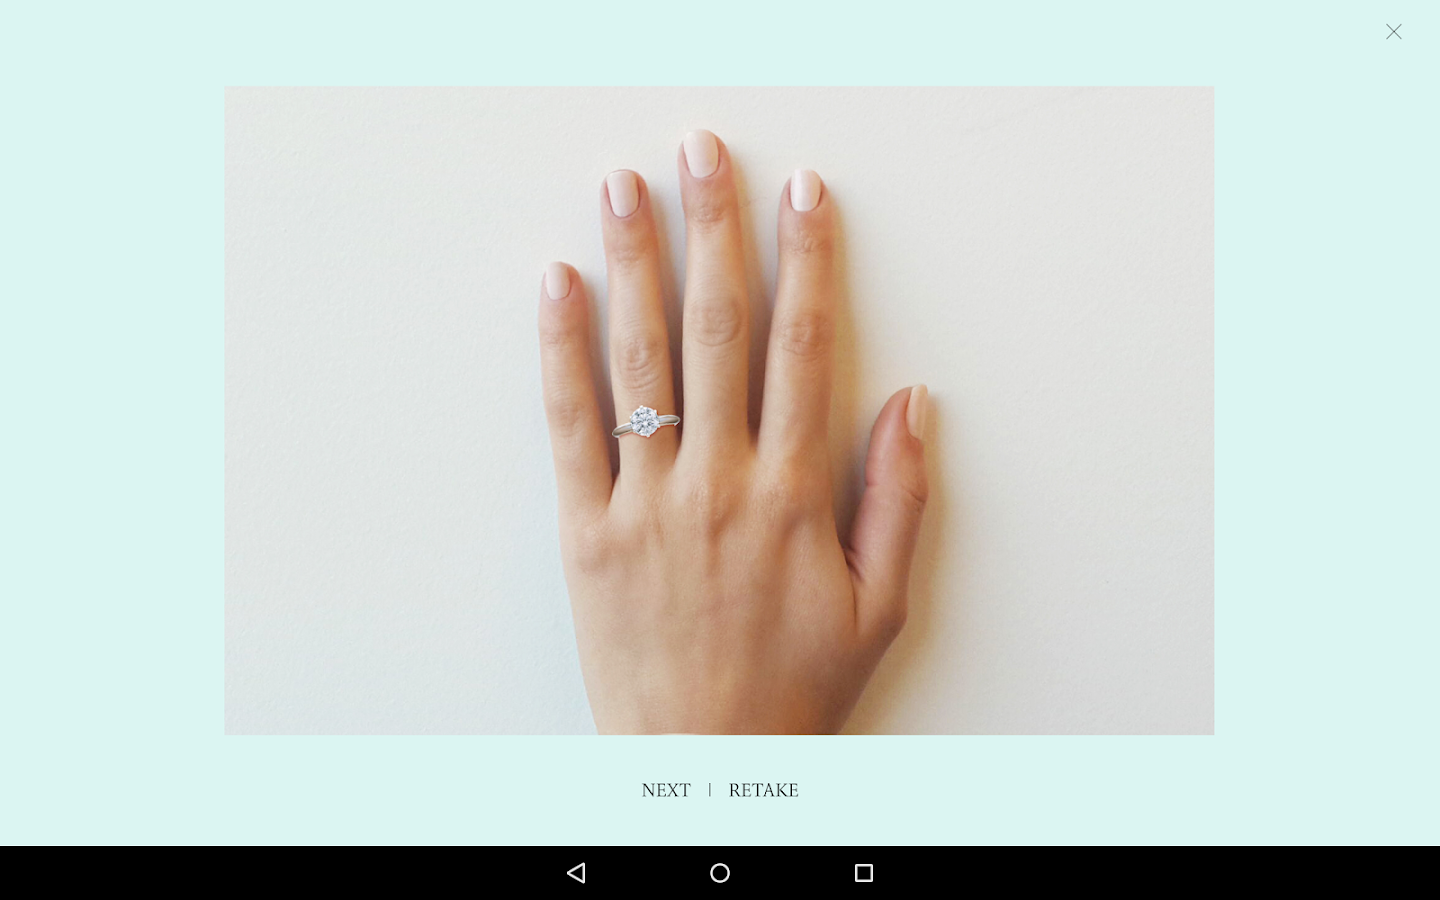 Tiffany Engagement Ring Finder Android Apps on Google Play